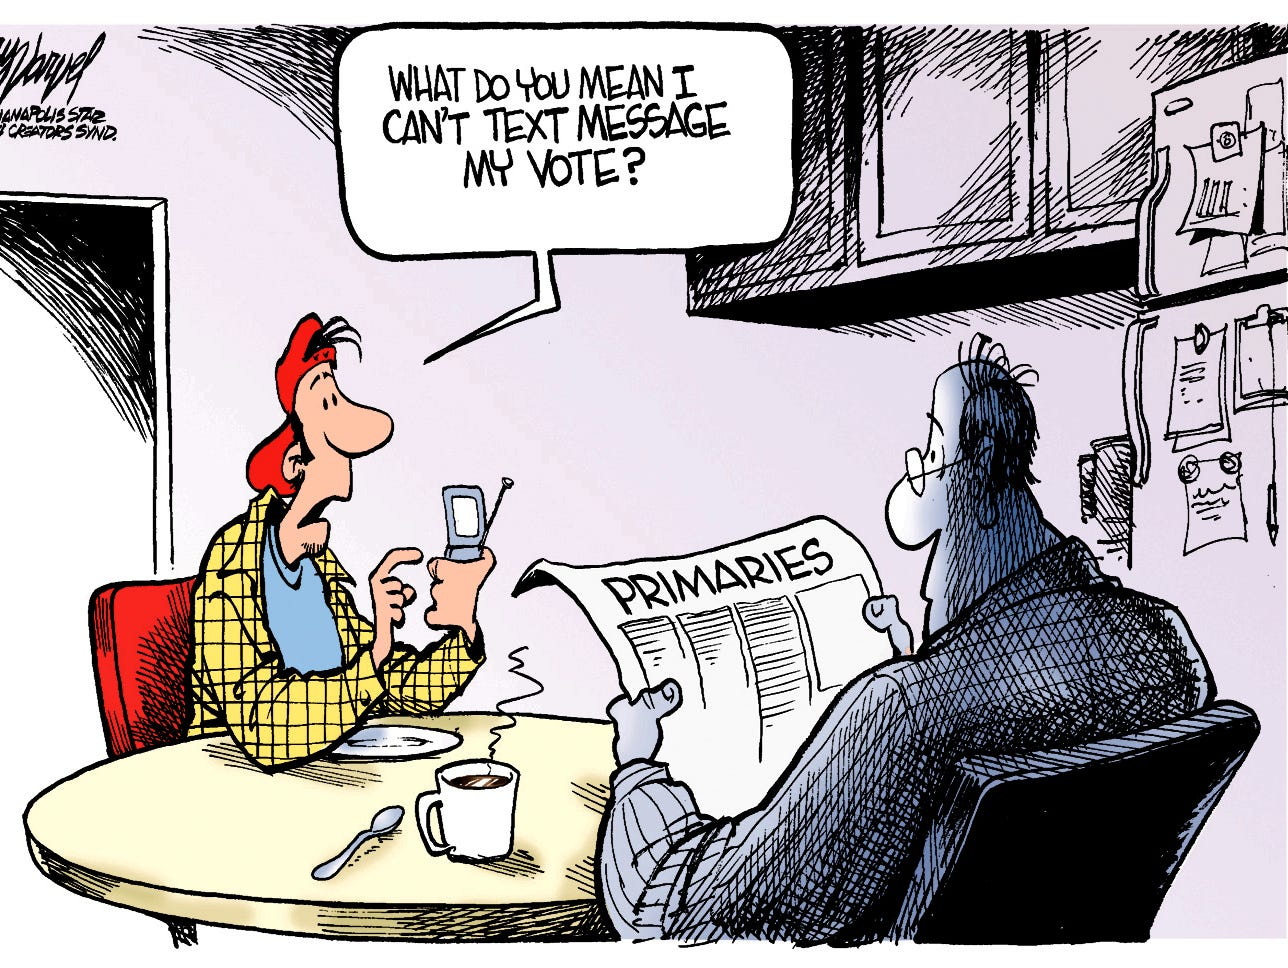 Young voters want more convenient ways to vote.